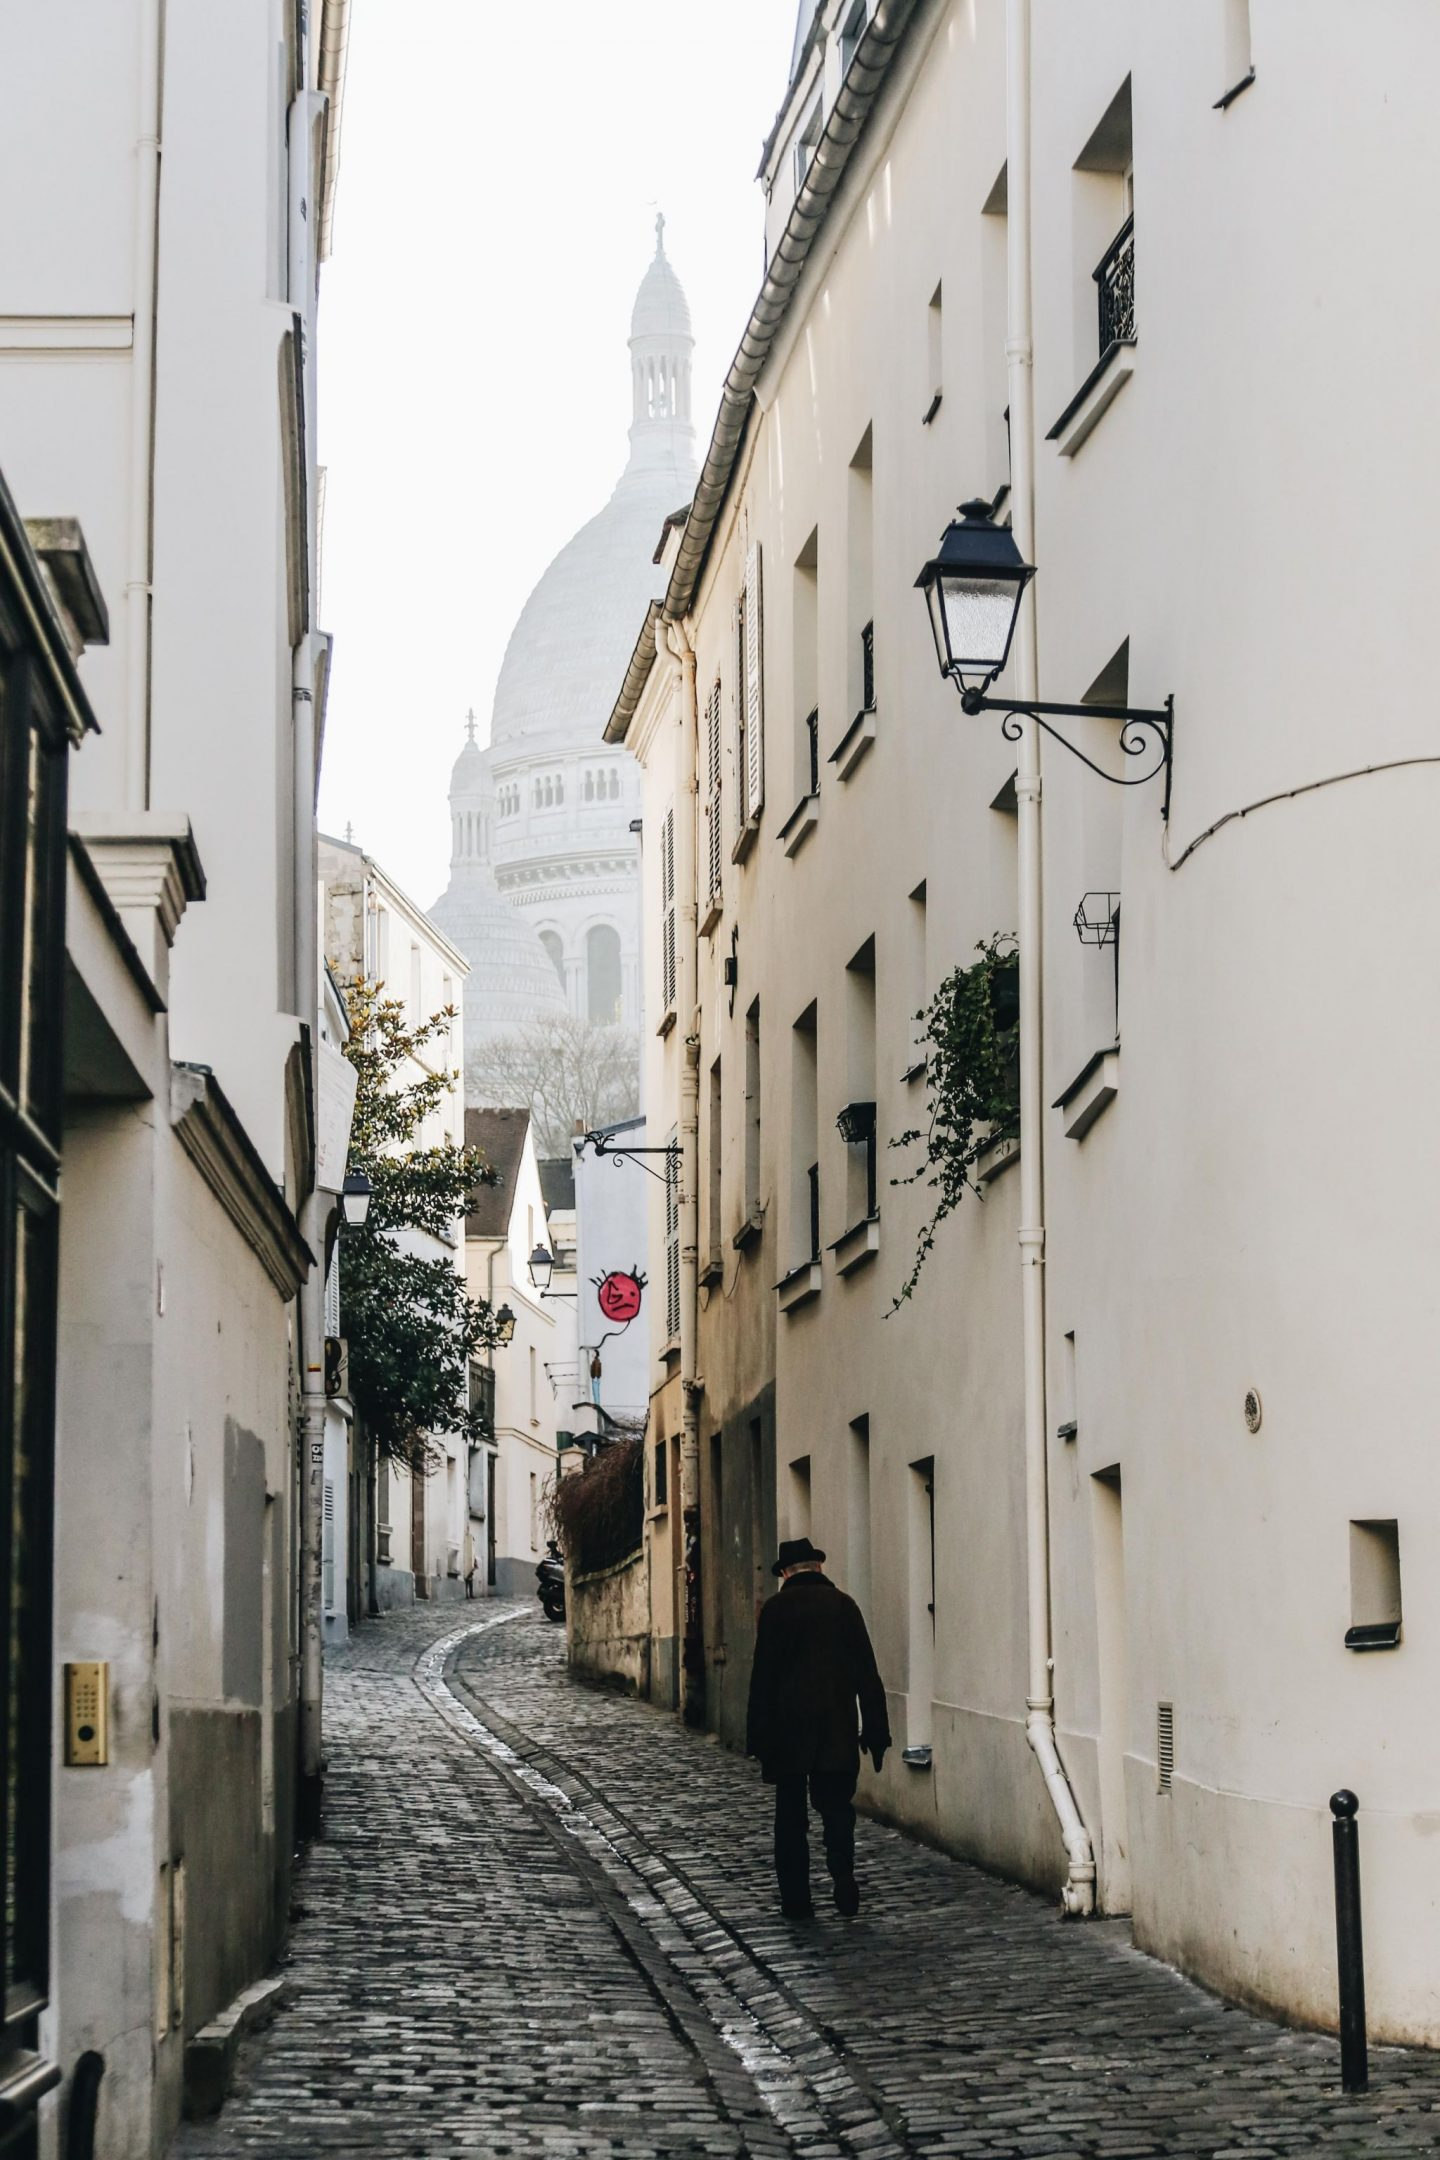 paris, montmartre, sacré-coeur, buildings, street, man, view